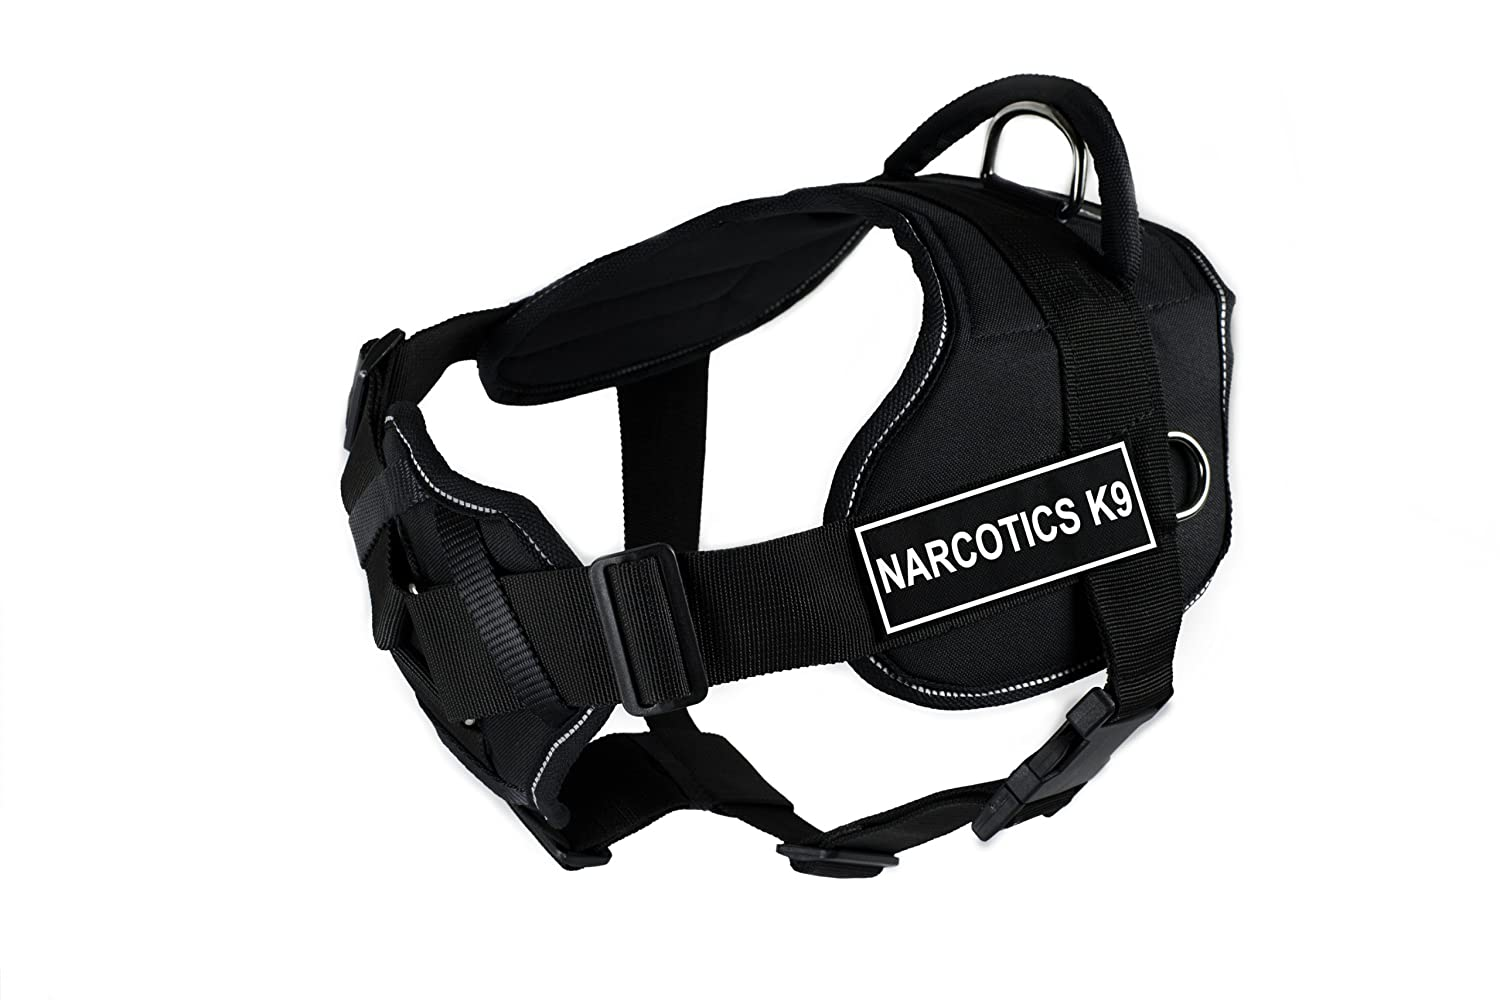 Dean & Tyler Fun Harness with Padded Chest Piece, Narcotics K9, Large, Black with Reflective Trim